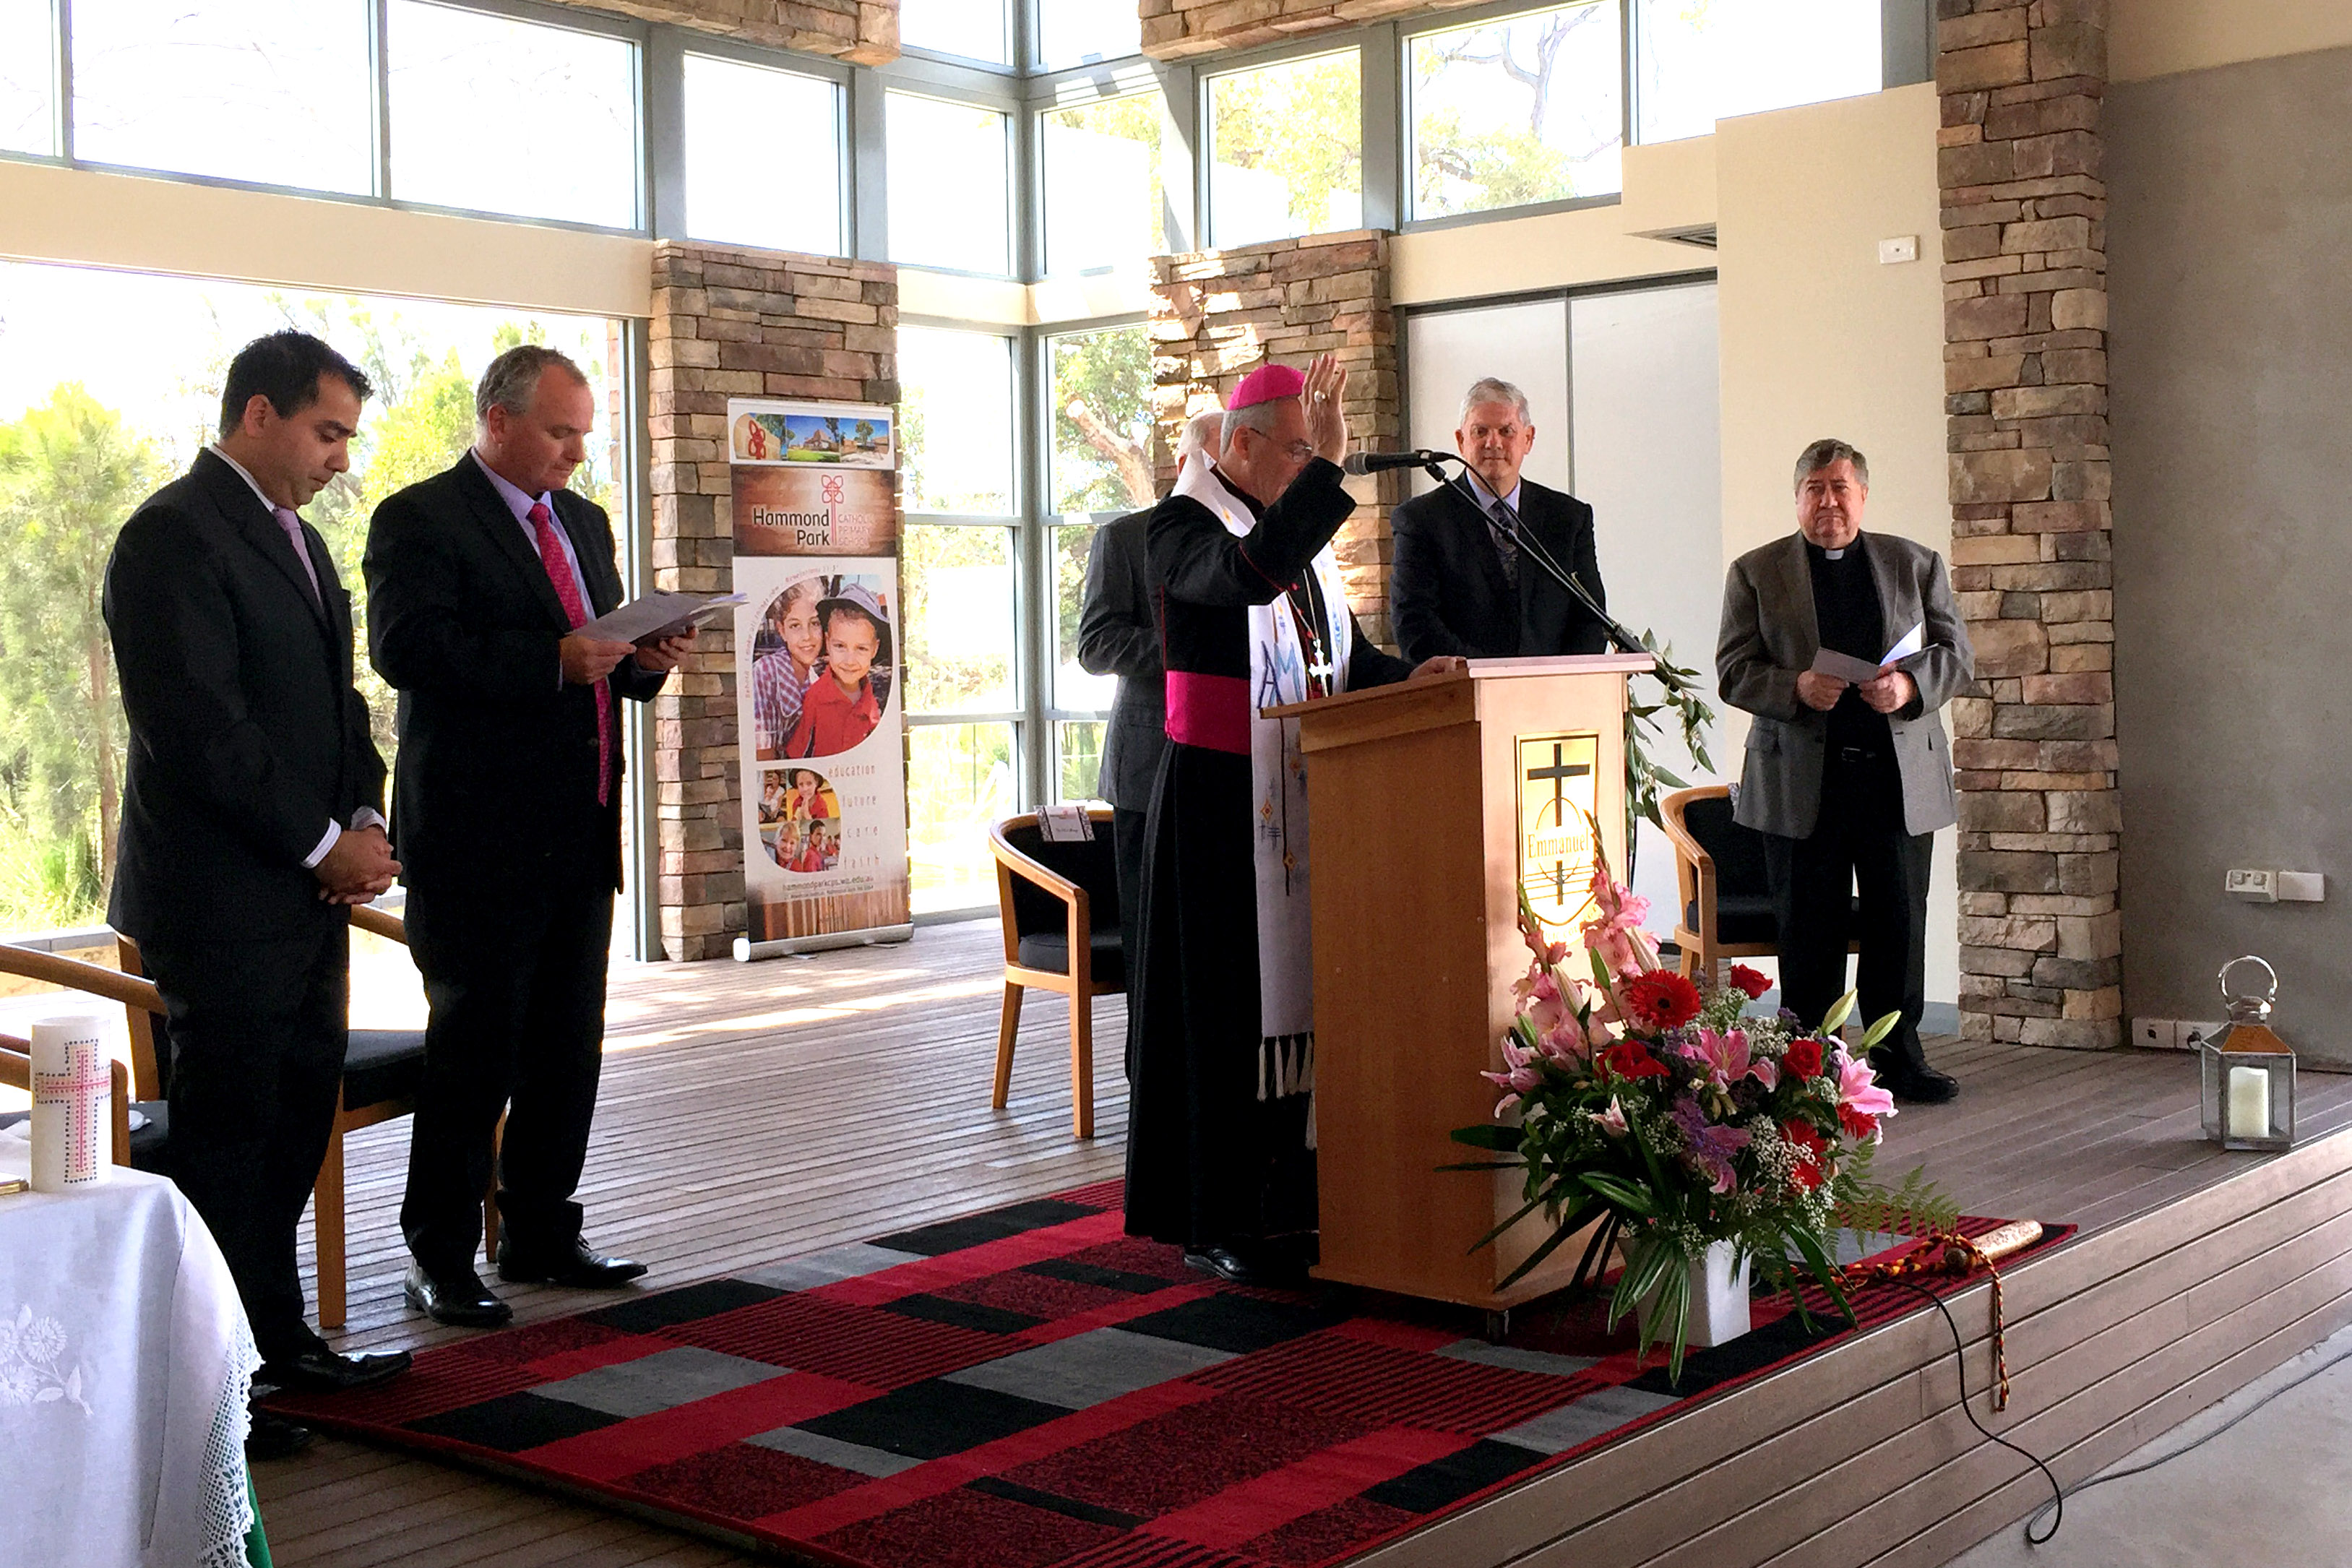 Perth Archbishop Timothy Costelloe SDB at the opening of Hammond Park Catholic Primary in November 2014. NCEC executive director Christian Zahra has this week said since lay Catholics were running schools in their houses in the early 1800s, Catholic education has been something that has been open to all families who seek it. Photo: Jamie O'Brien.